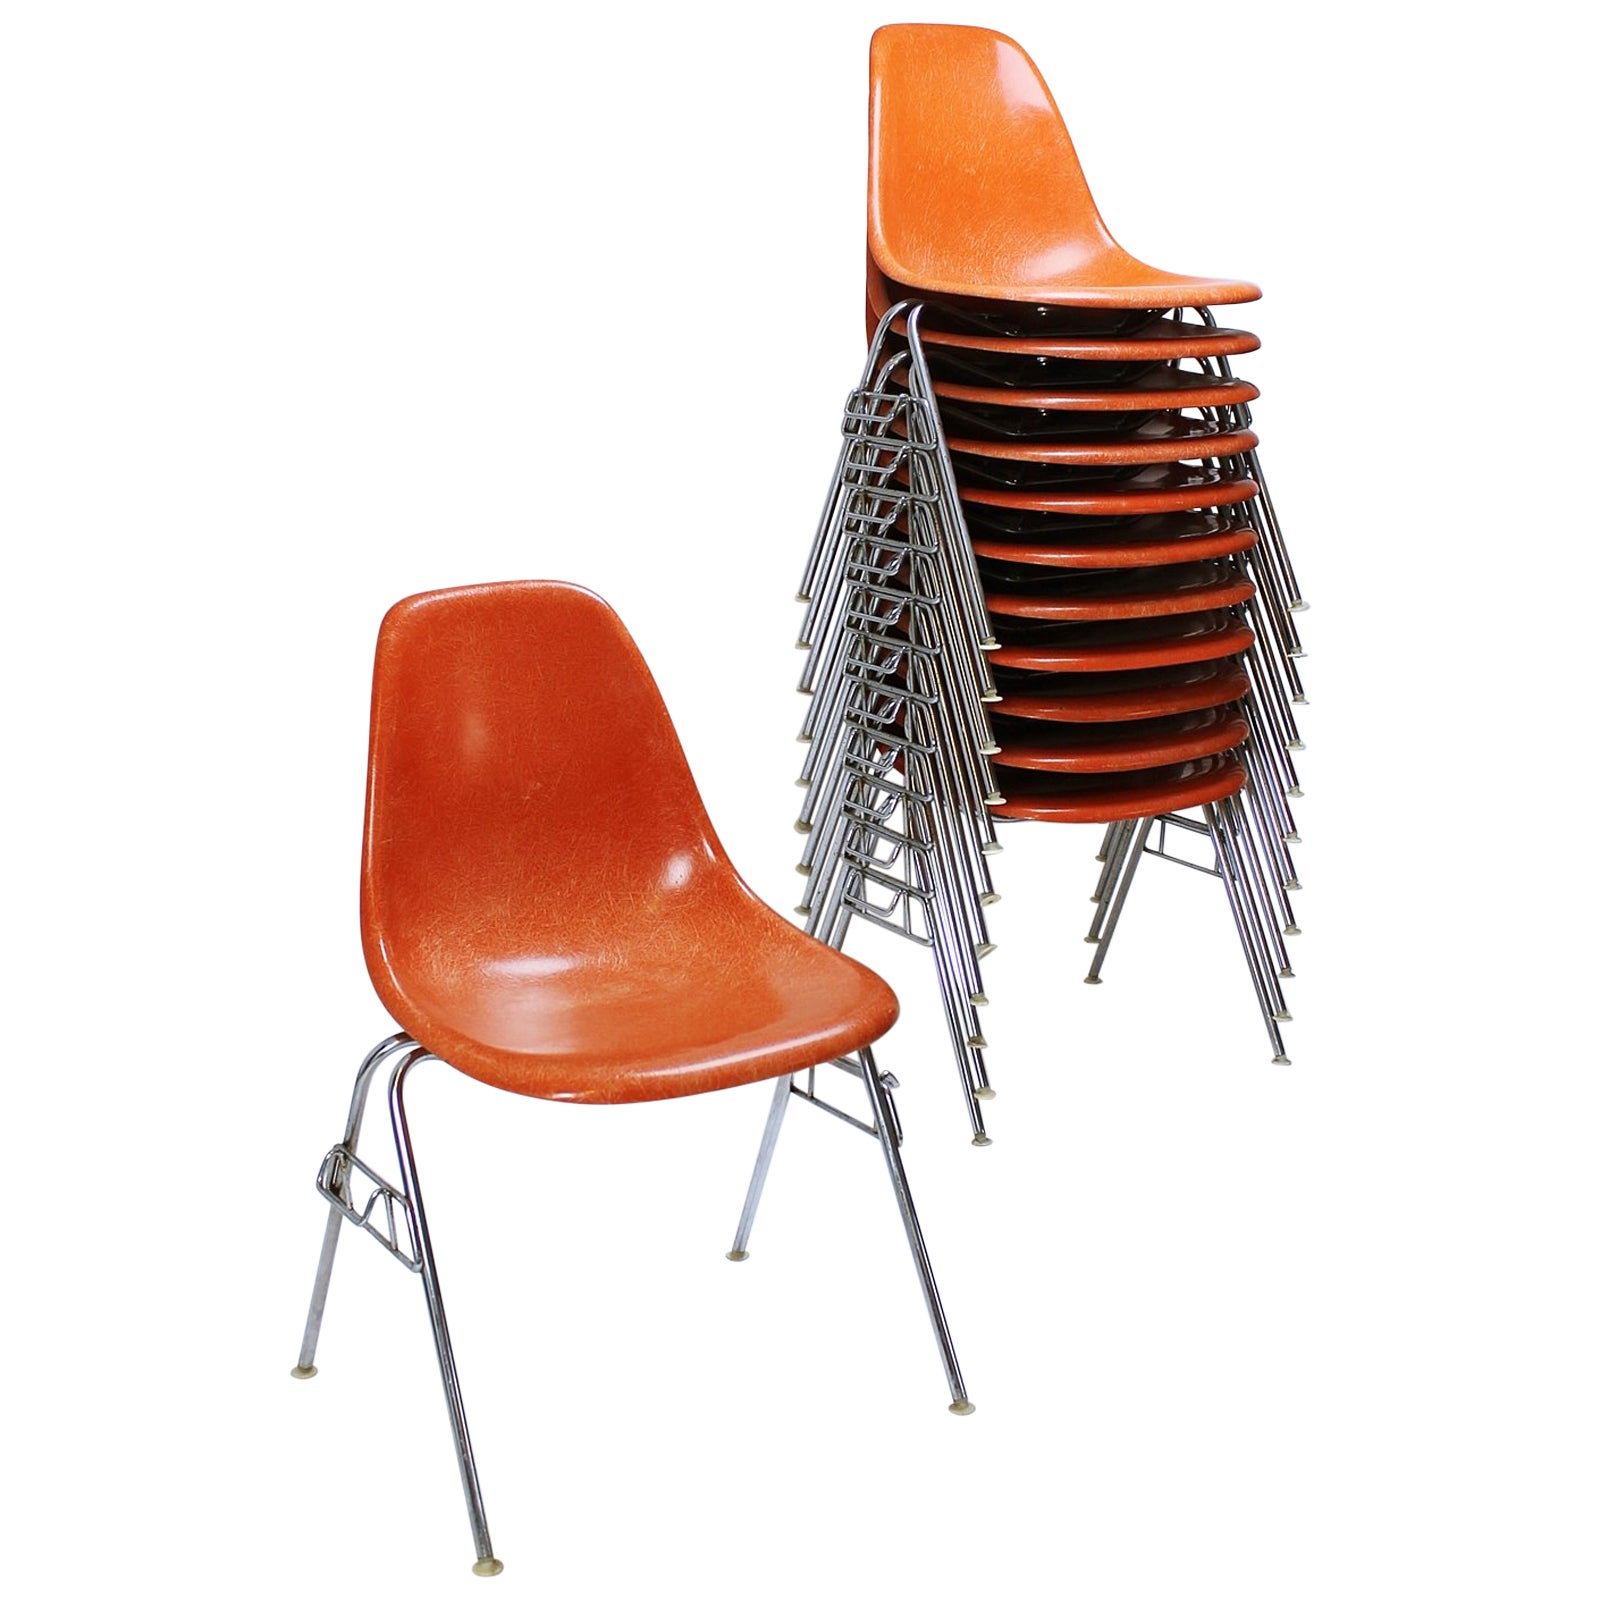 Charles Eames Fiberglass Dss Stacking Chair By Ray Charles Eames For Herman Miller Vitra